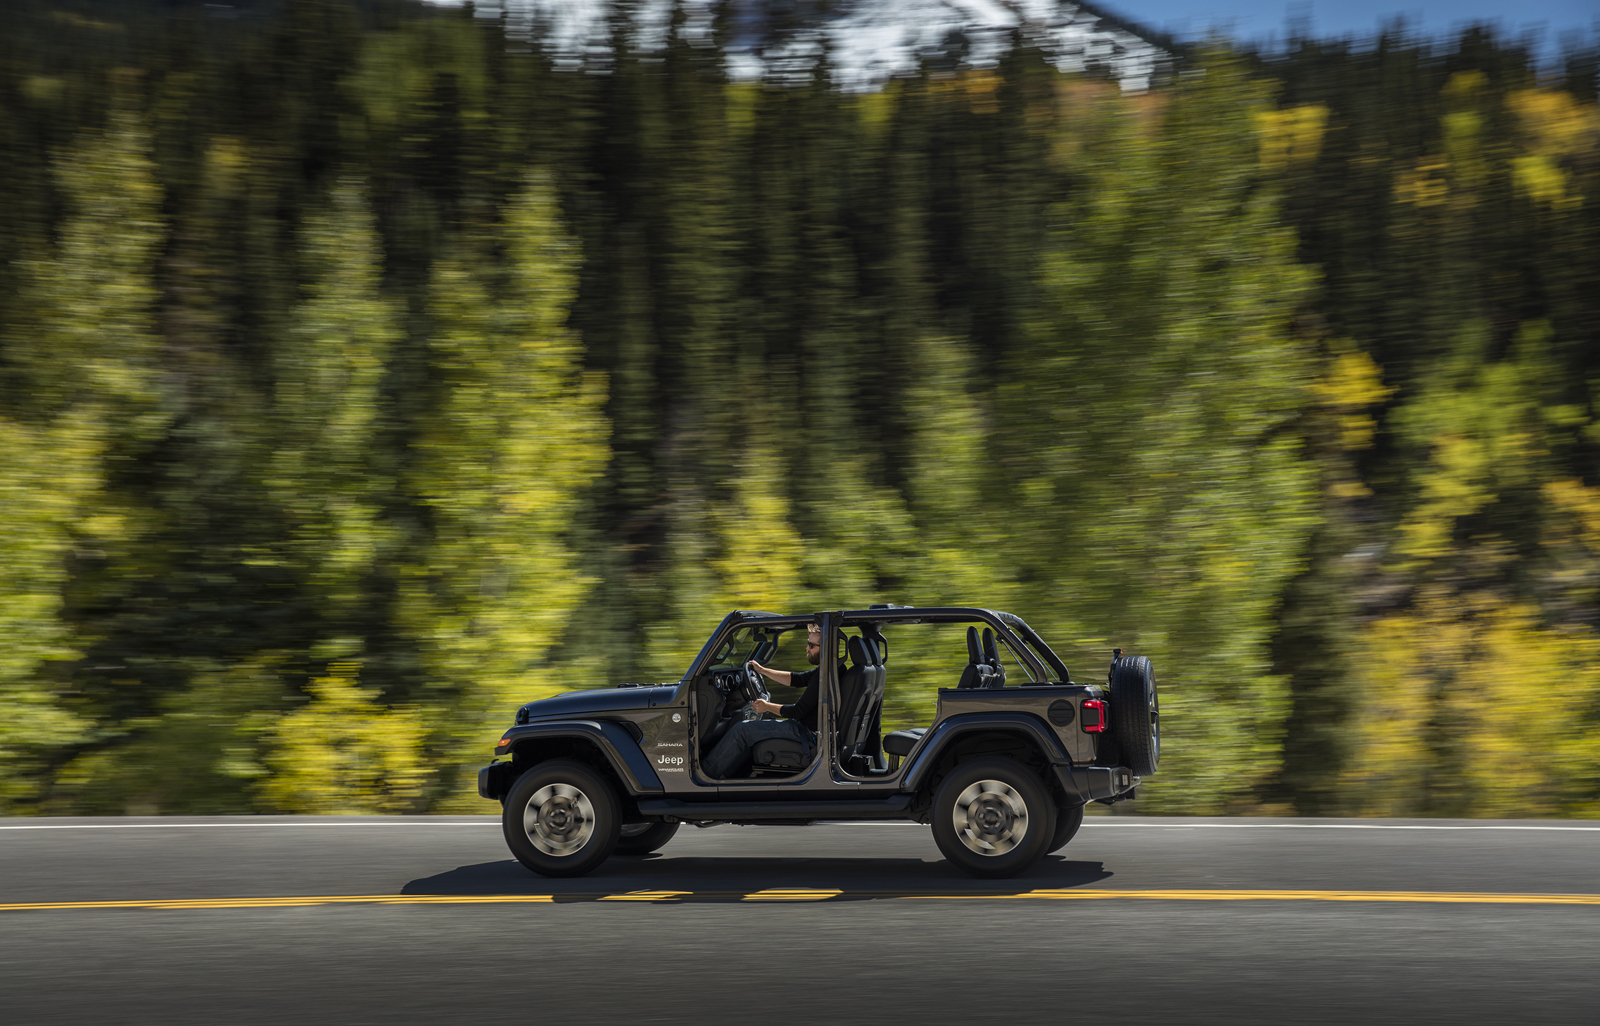 New 2018 Jeep Wrangler JL Debuts With 3 Engine Options